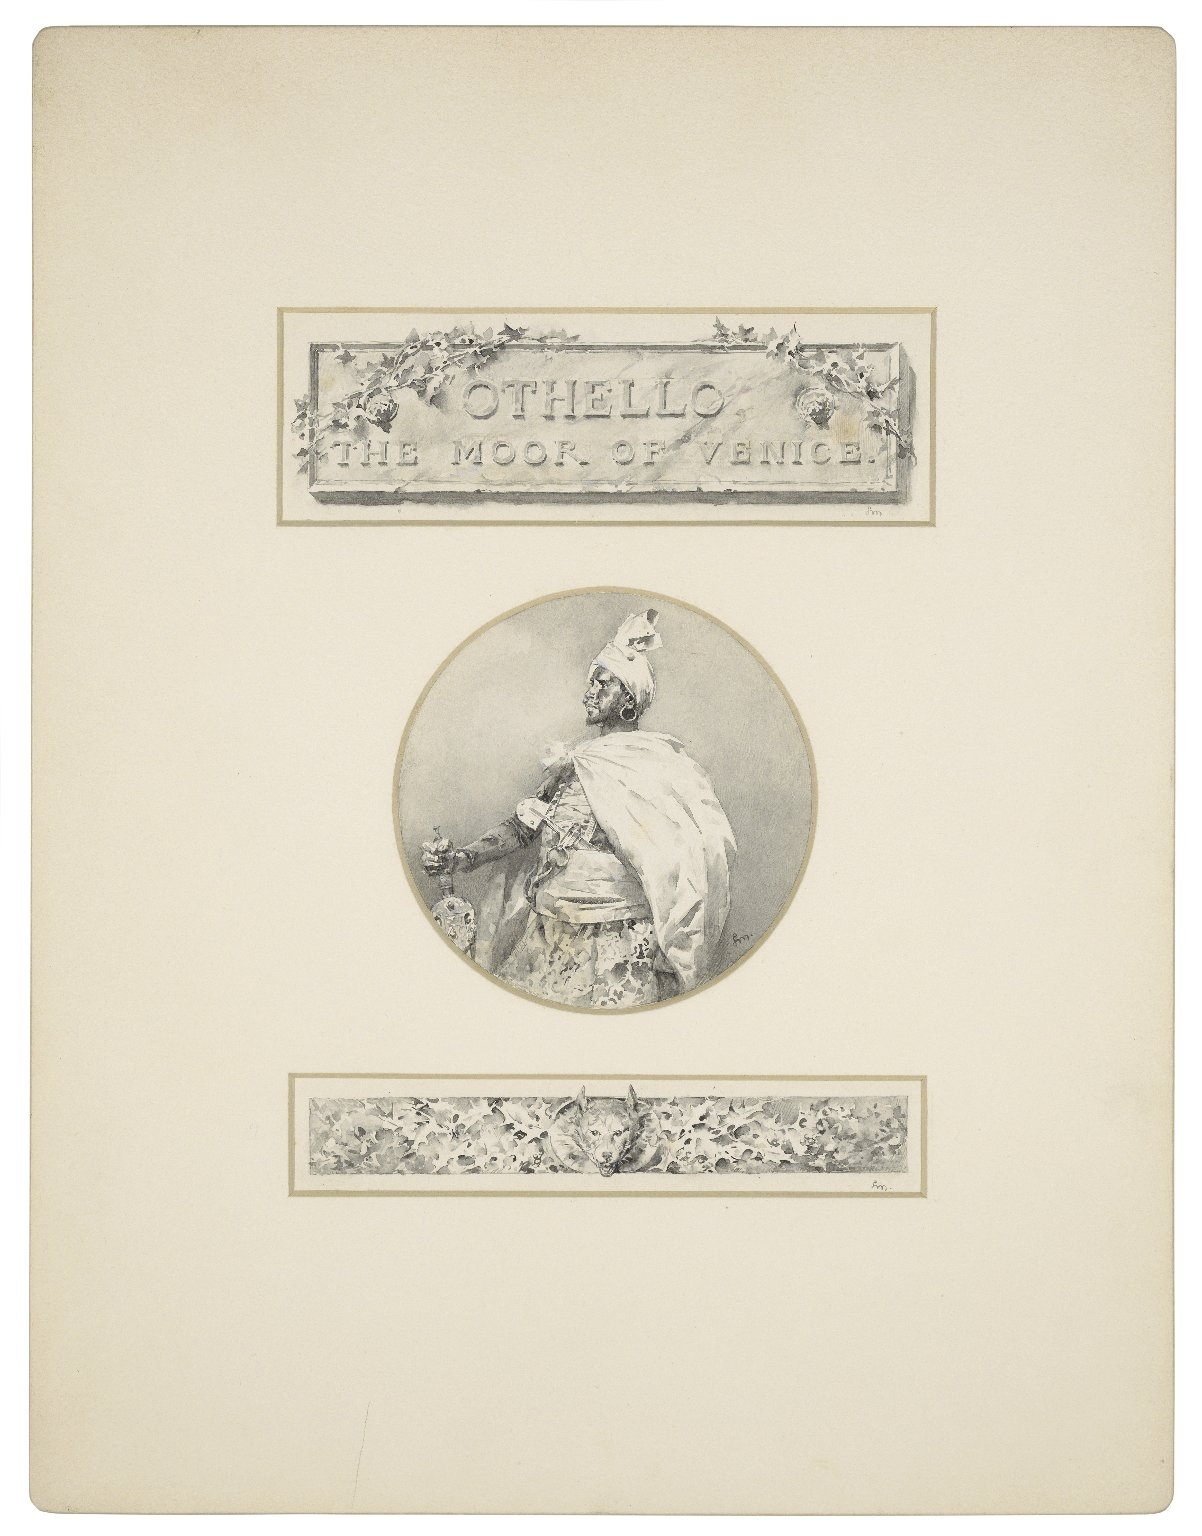 [Othello, title plate, portrait of Othello and tailpiece] [graphic] / L.M.